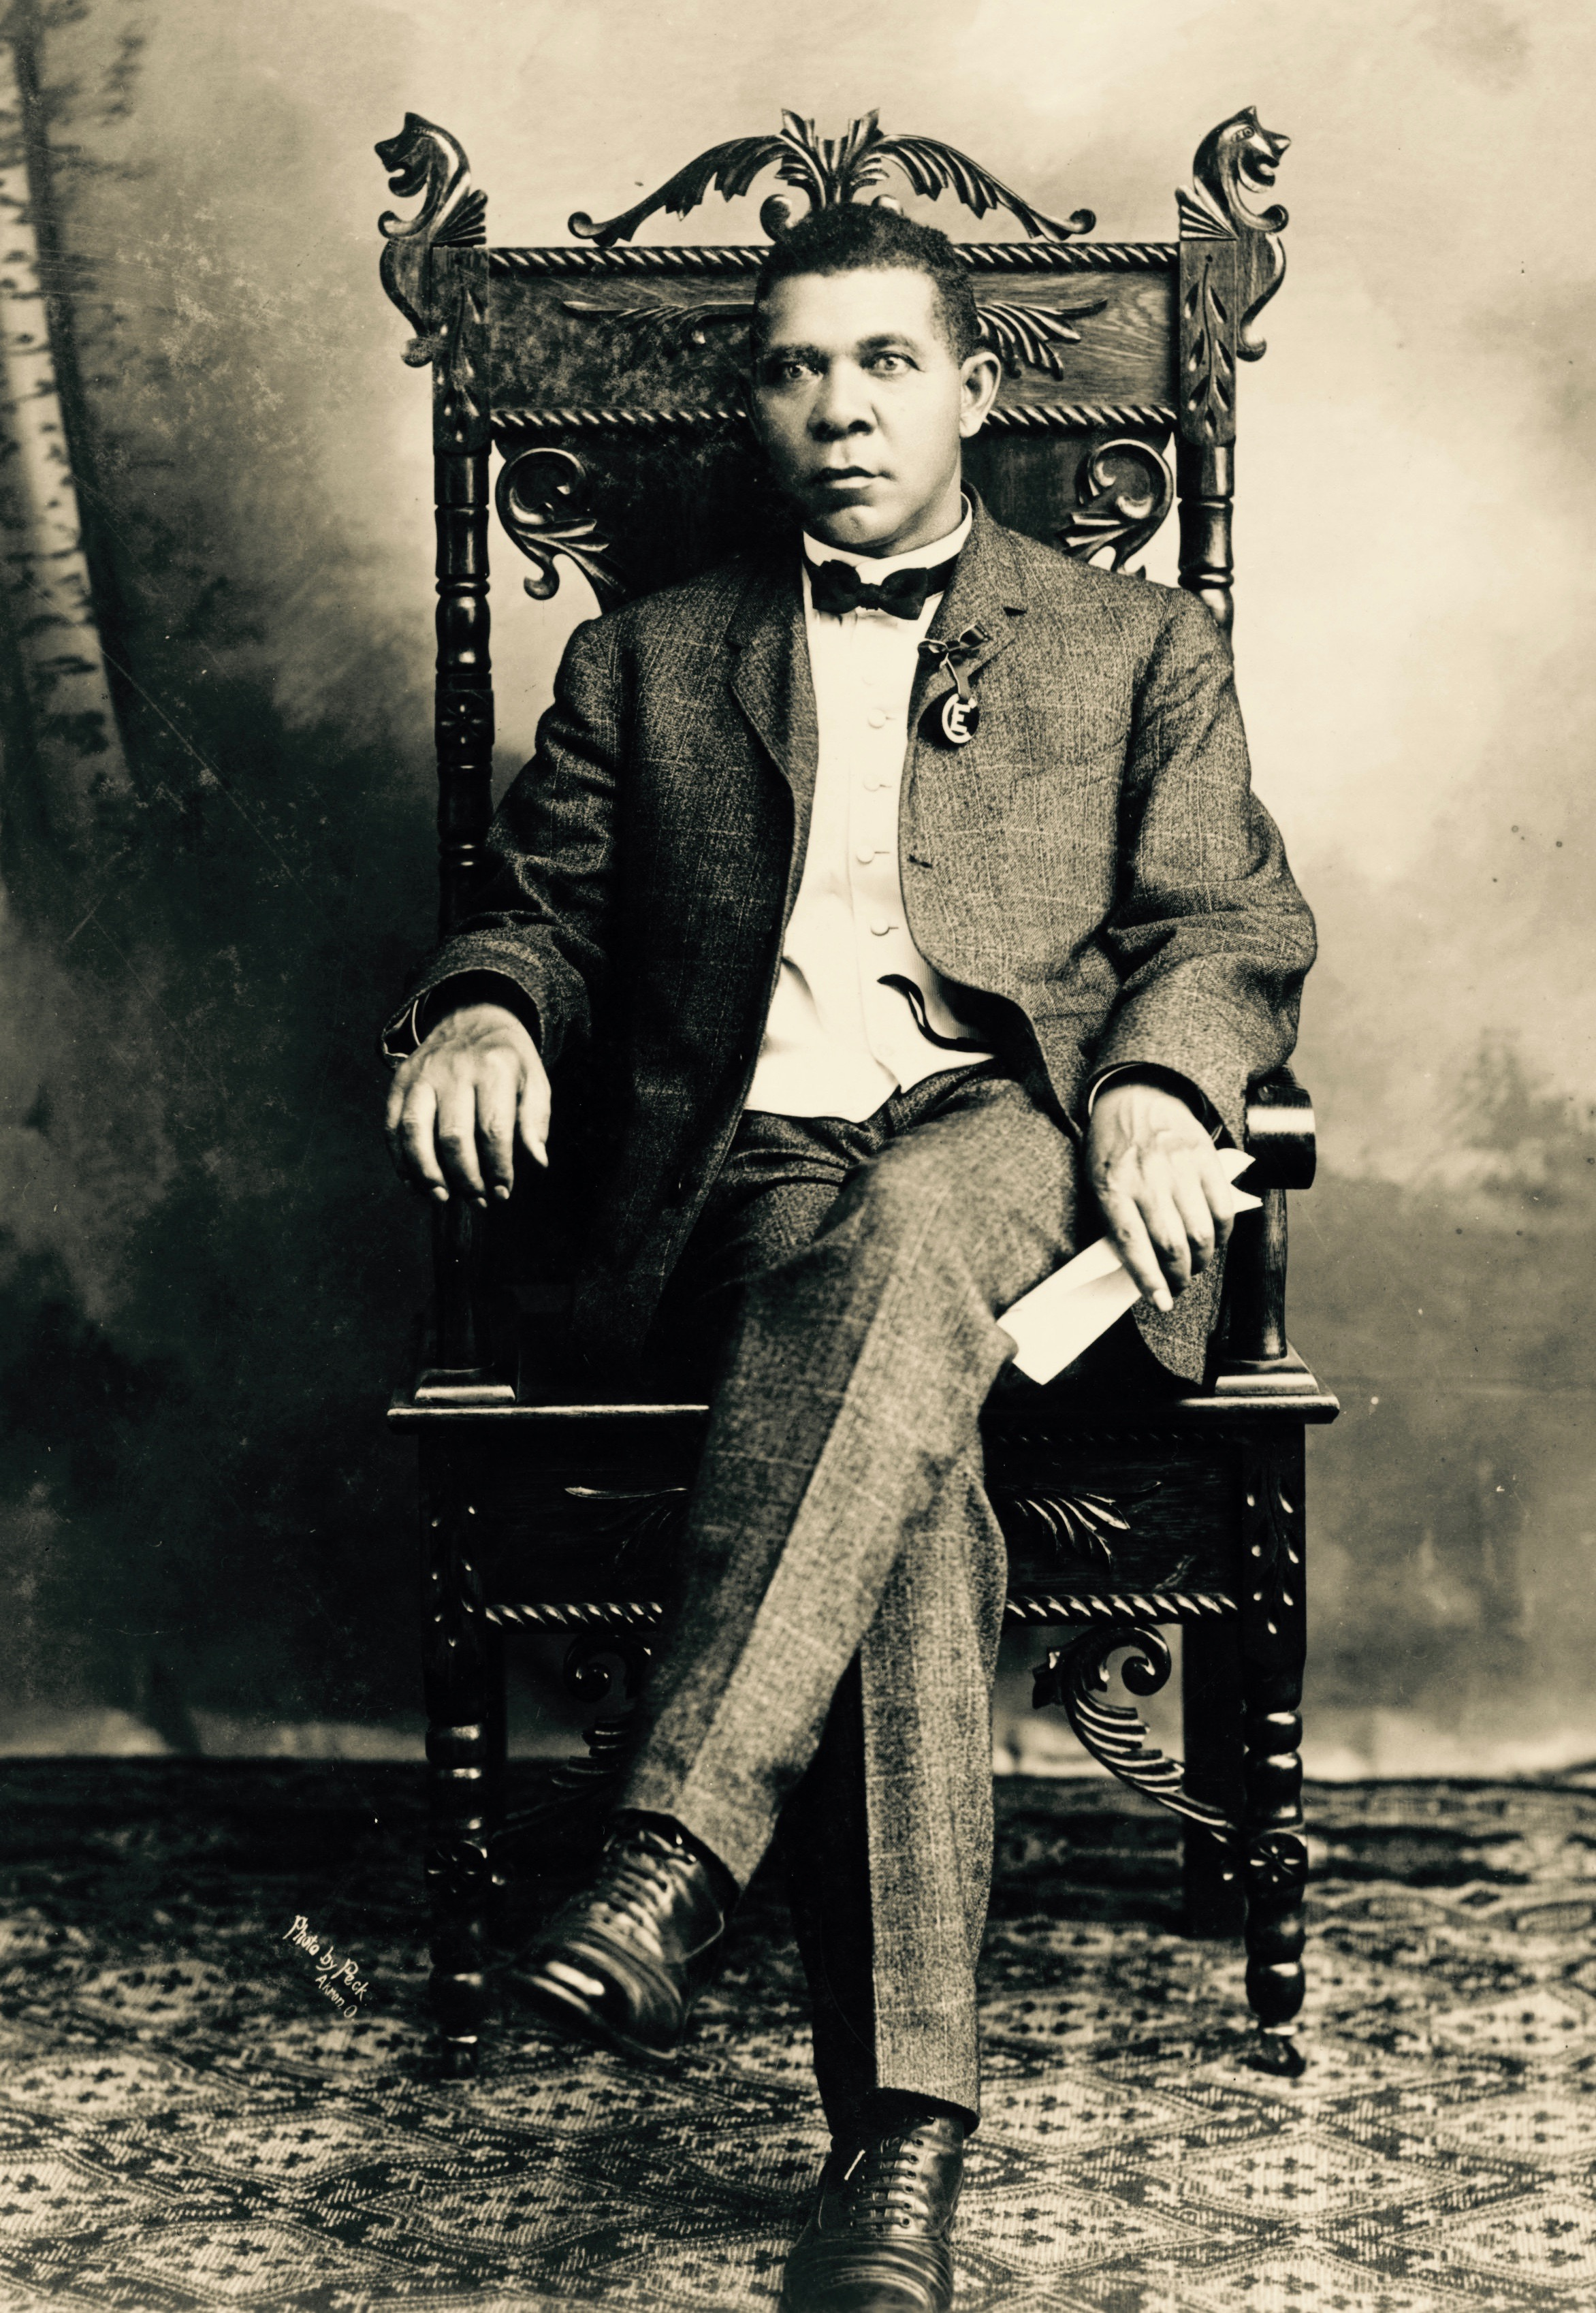 circa 1890: American educationalist, writer and champion of rights for blacks, Booker T Washington (1856 - 1915). (Photo by MPI/Getty Images)